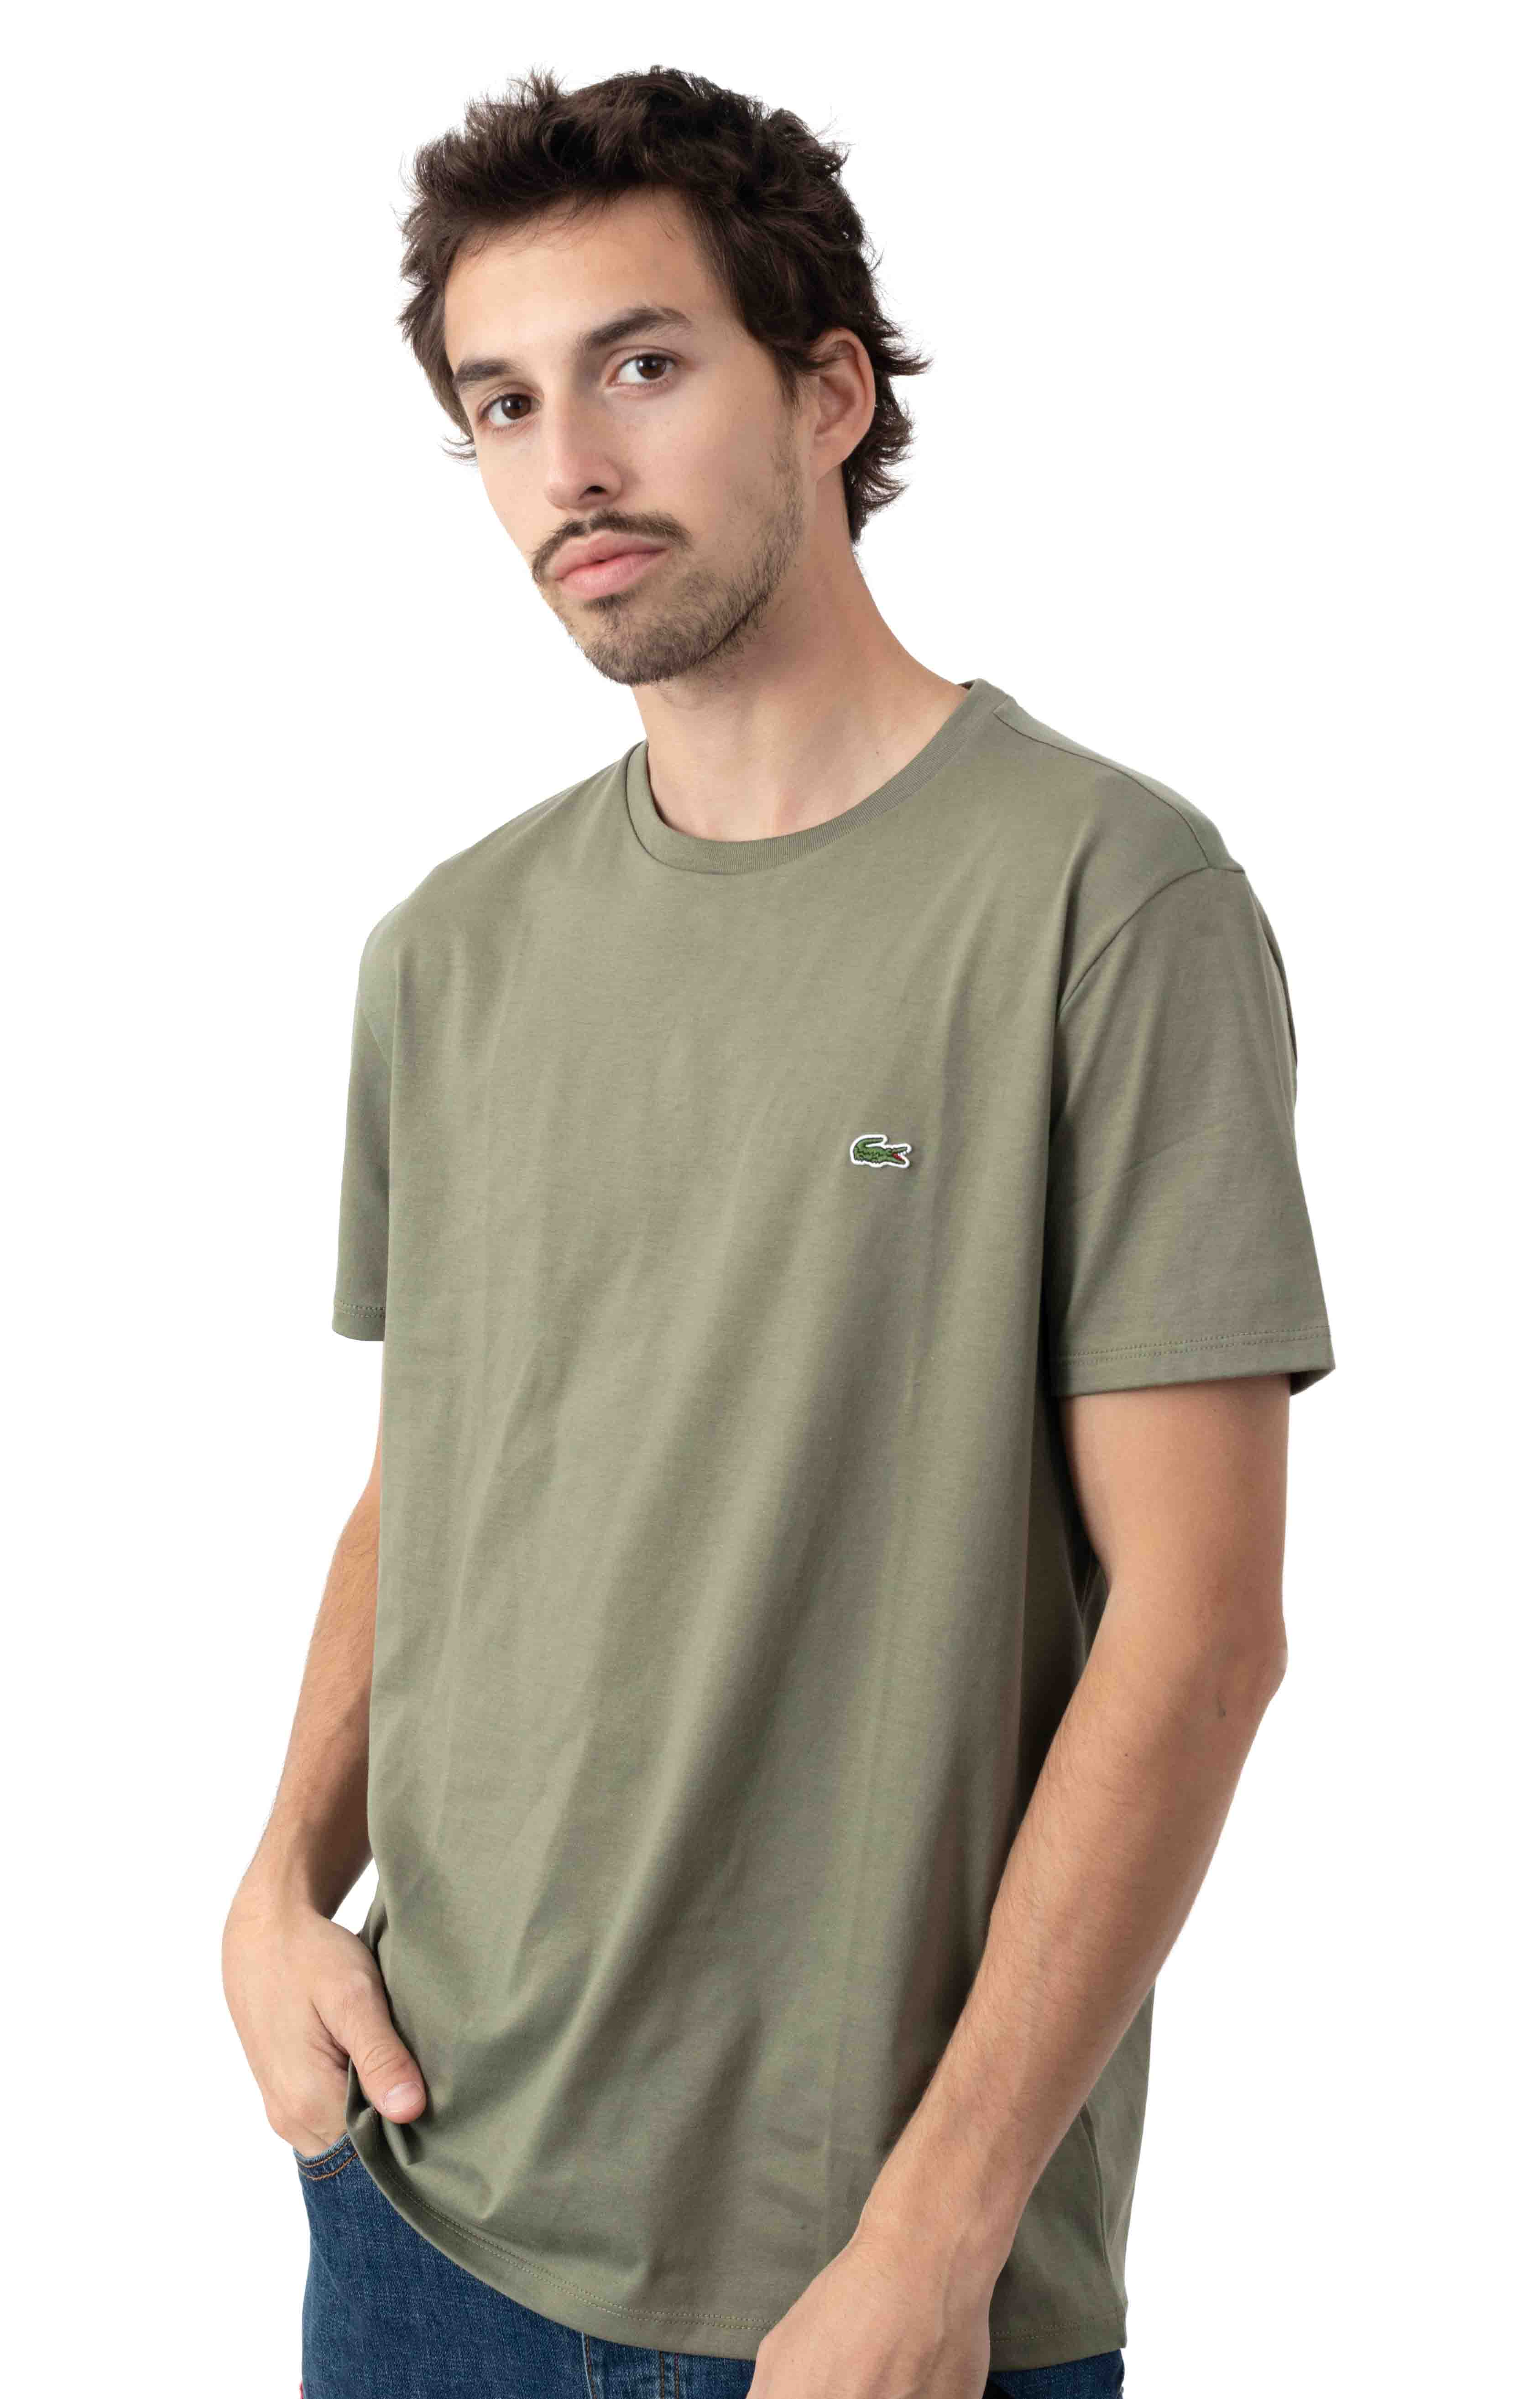 Crewneck Pima Cotton Jersey T-Shirt - Khaki Green